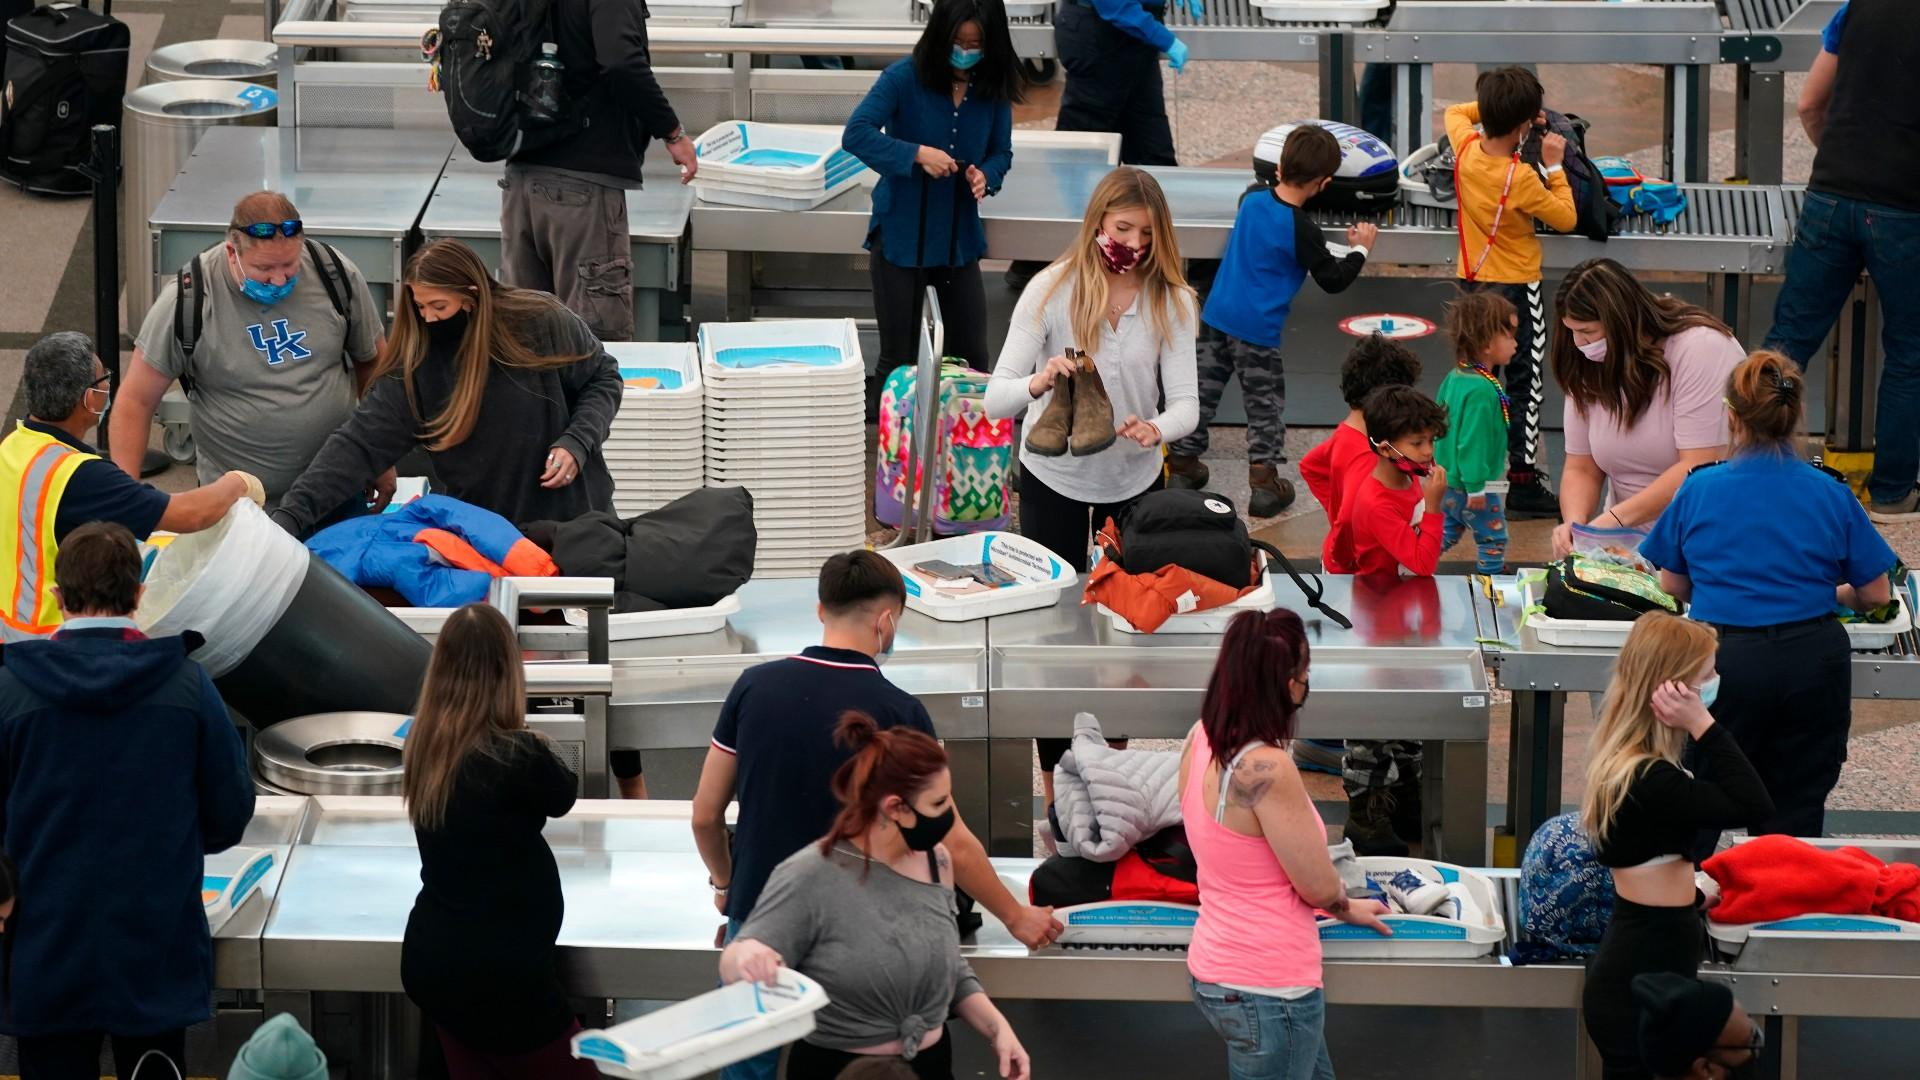 Mom S Worth It Us Holiday Travel Surges Despite Outbreak Chicago News Wttw